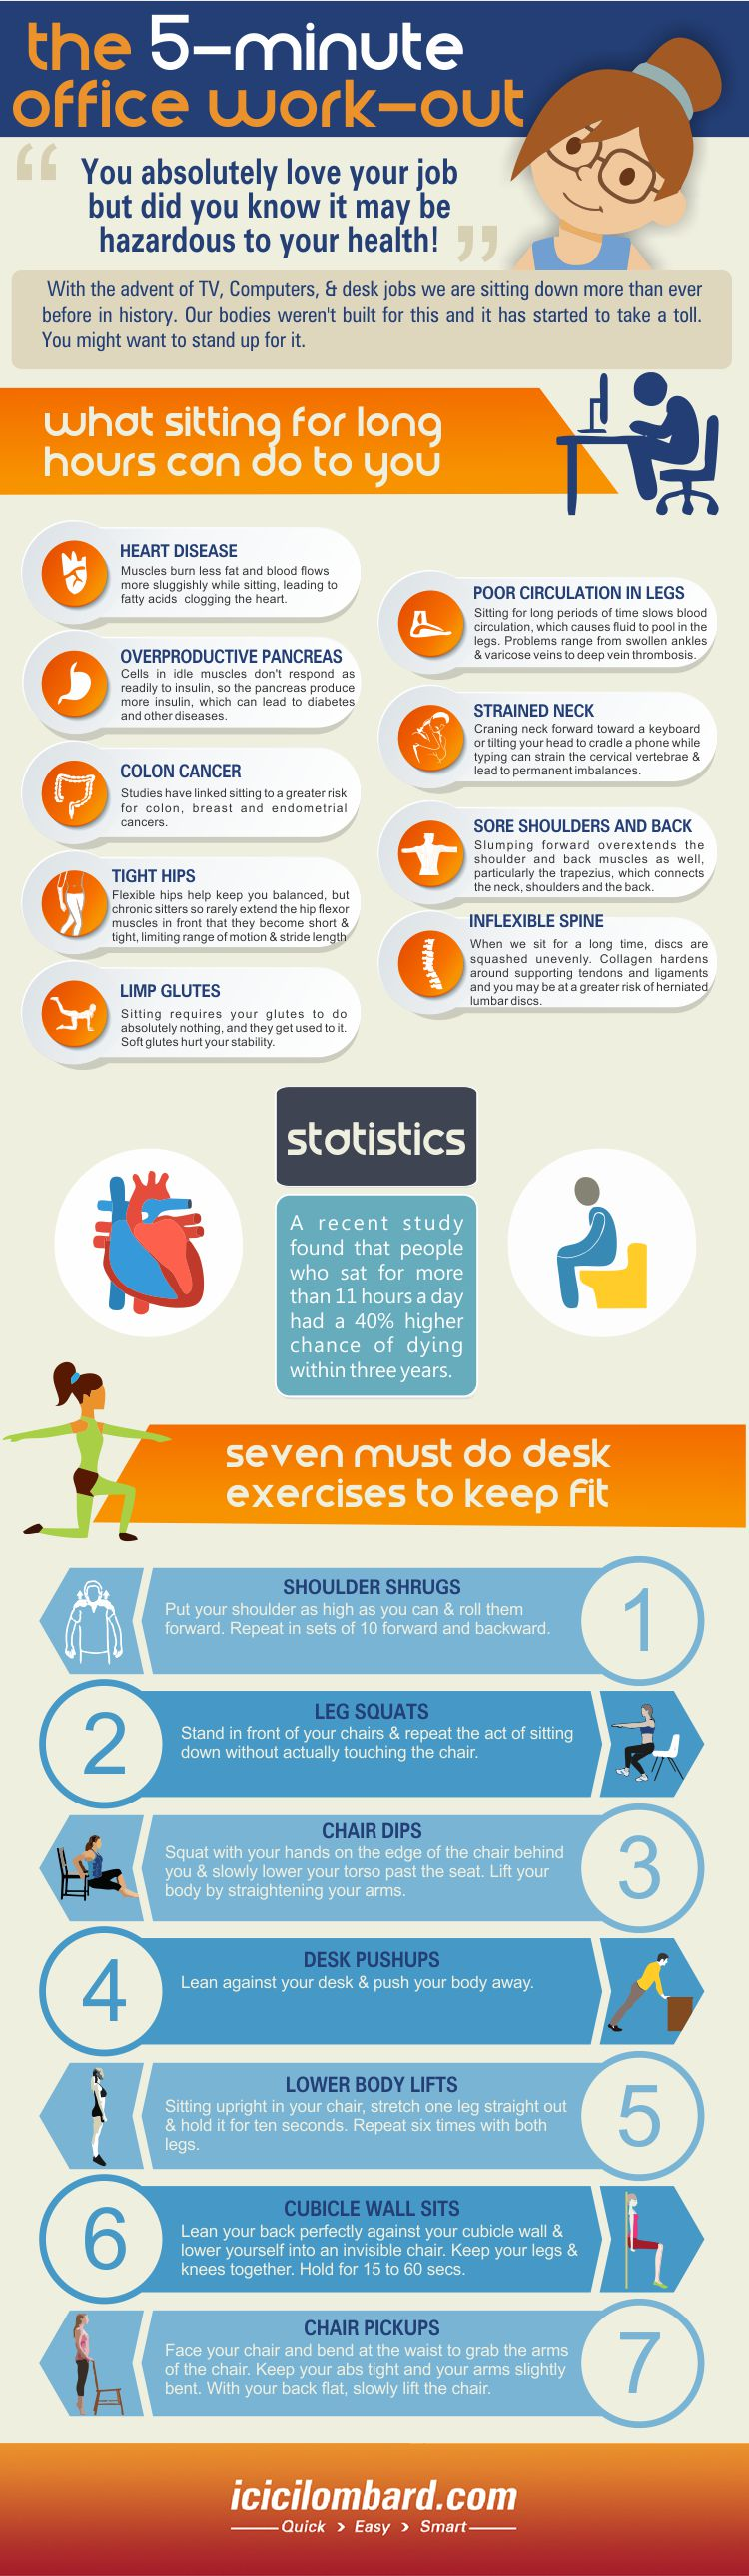 Office Exercise that Keep you Fit